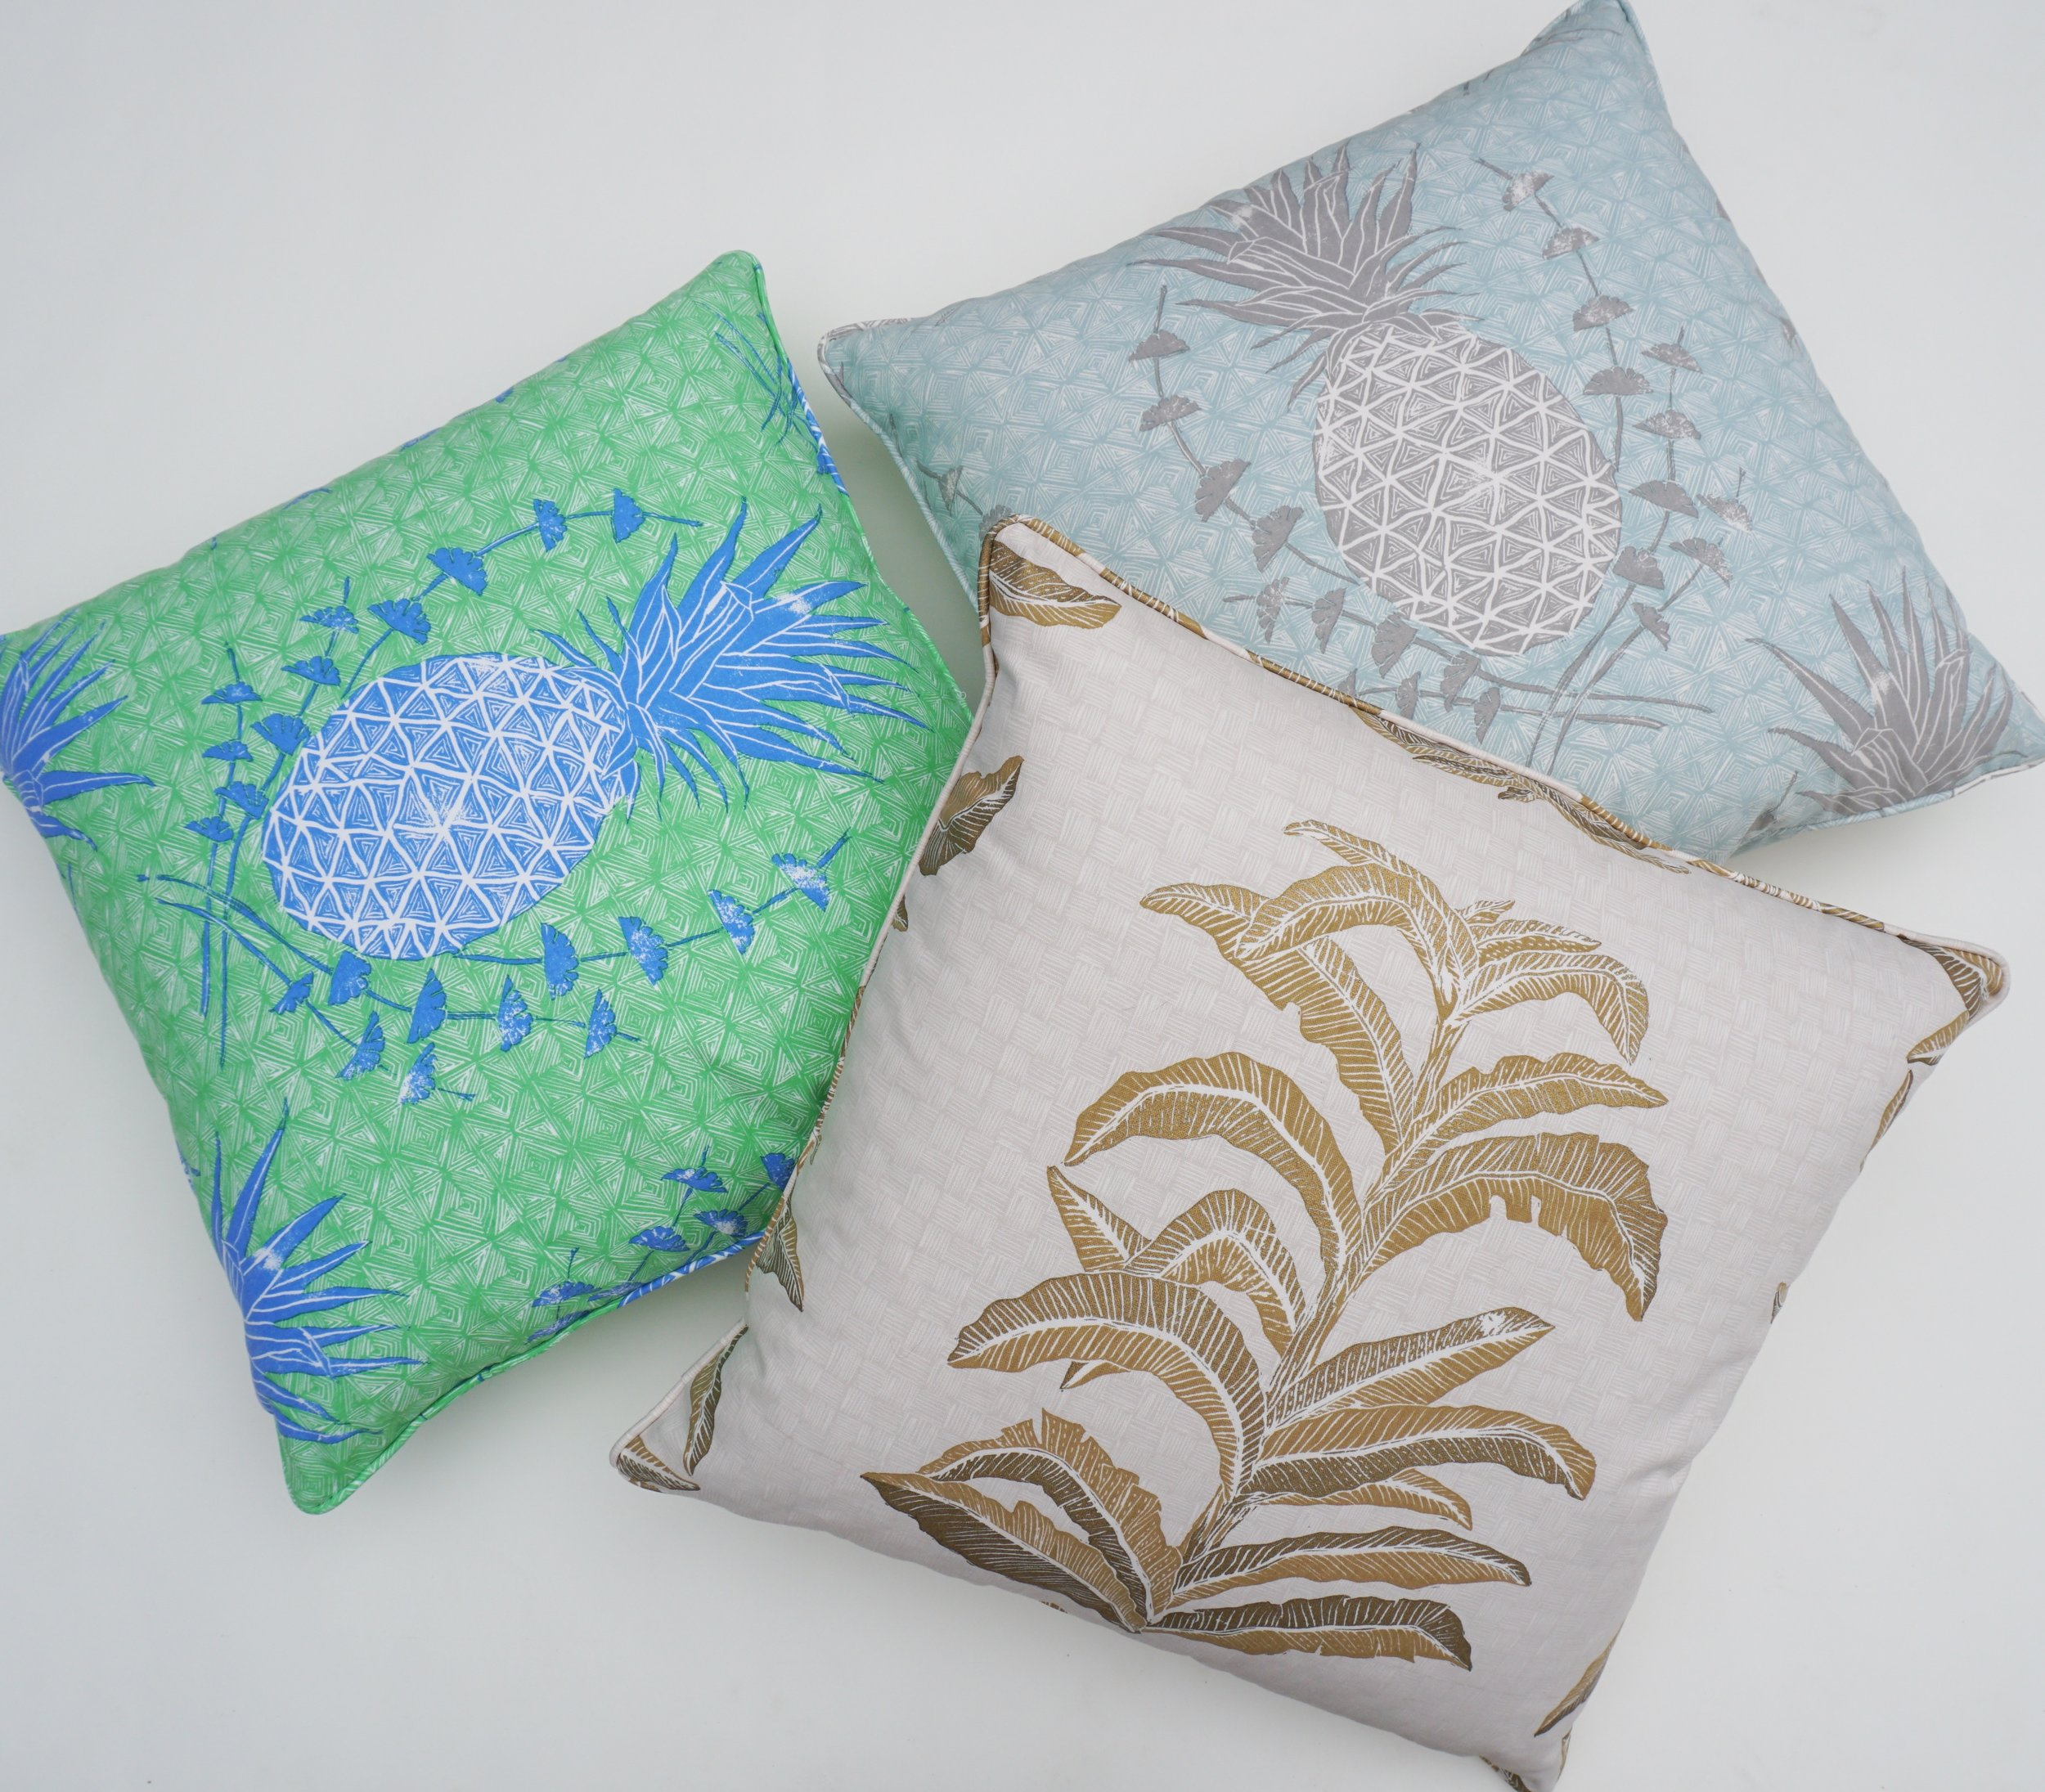 Royal Pineapple Pillows in Chandler and Celadon